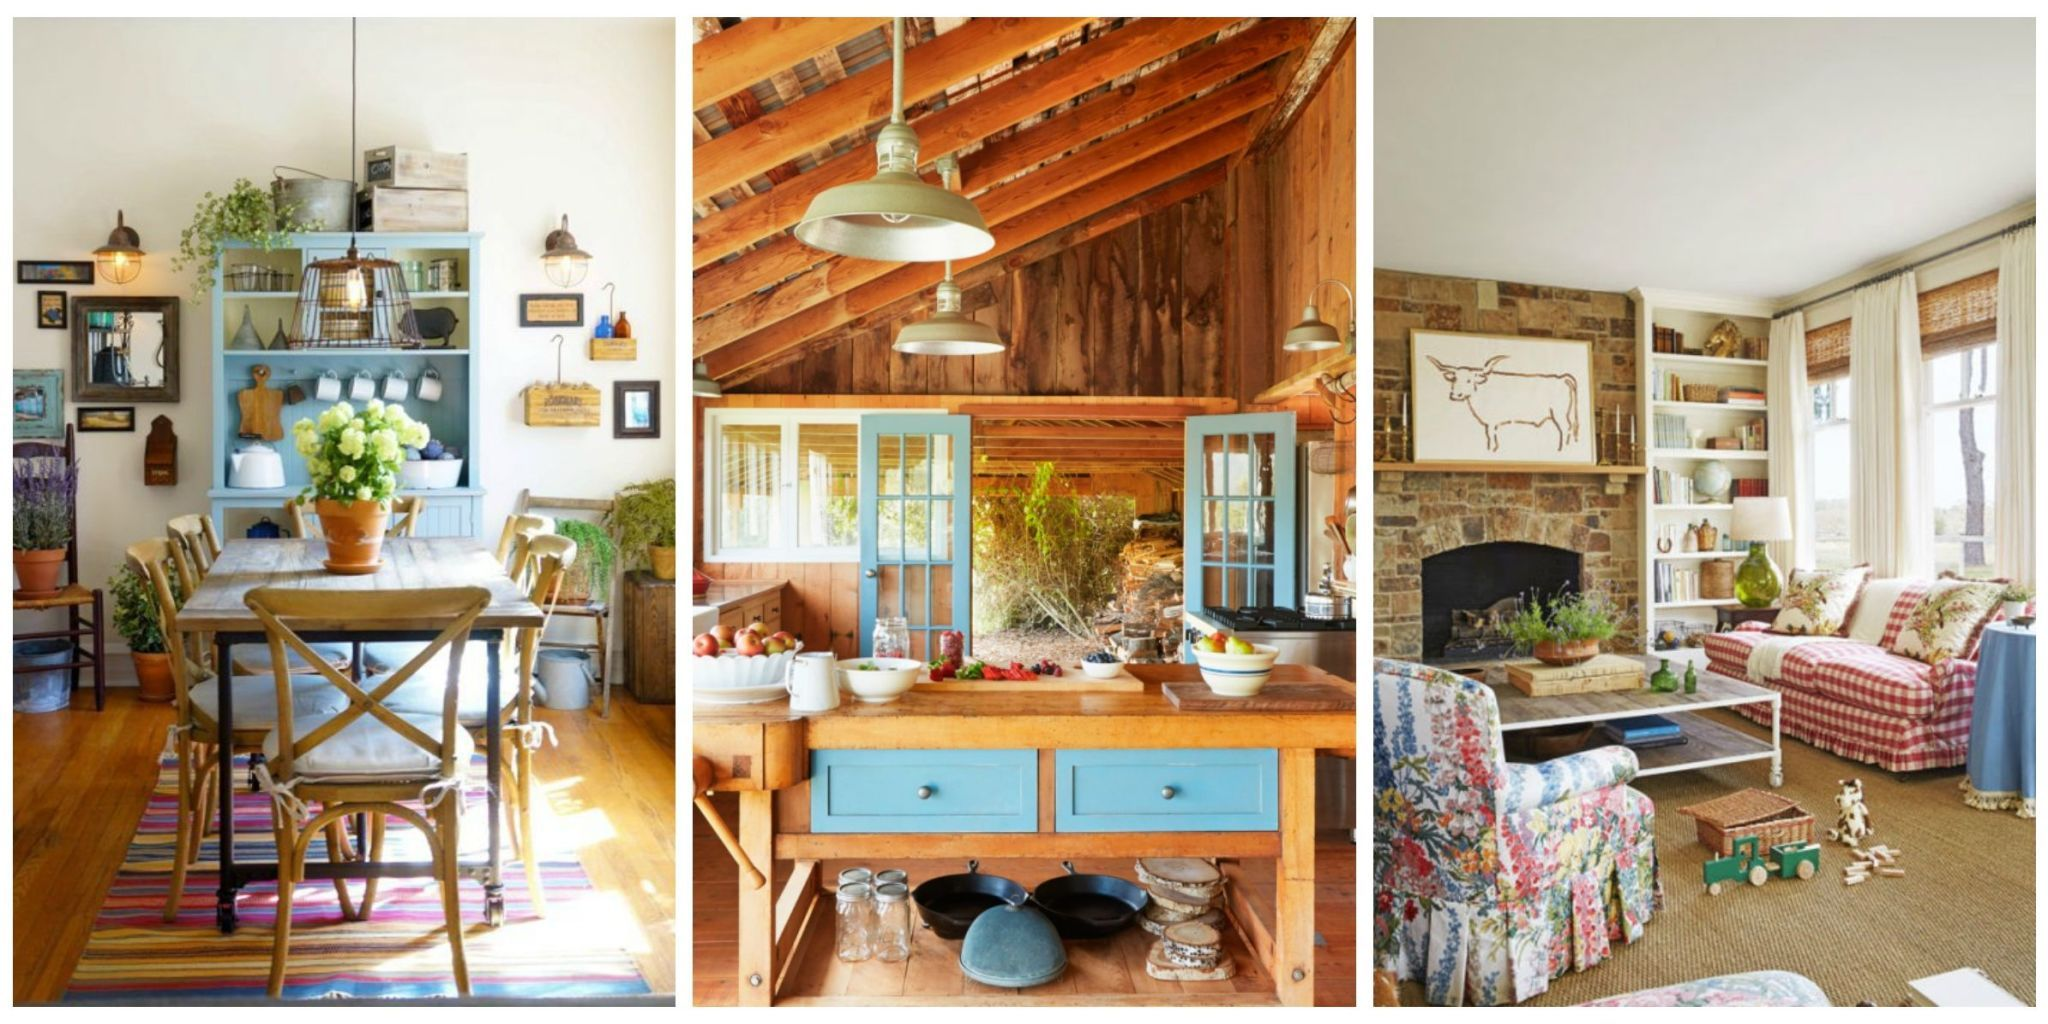 30  Best Farmhouse Style Ideas   Rustic Home Decor image